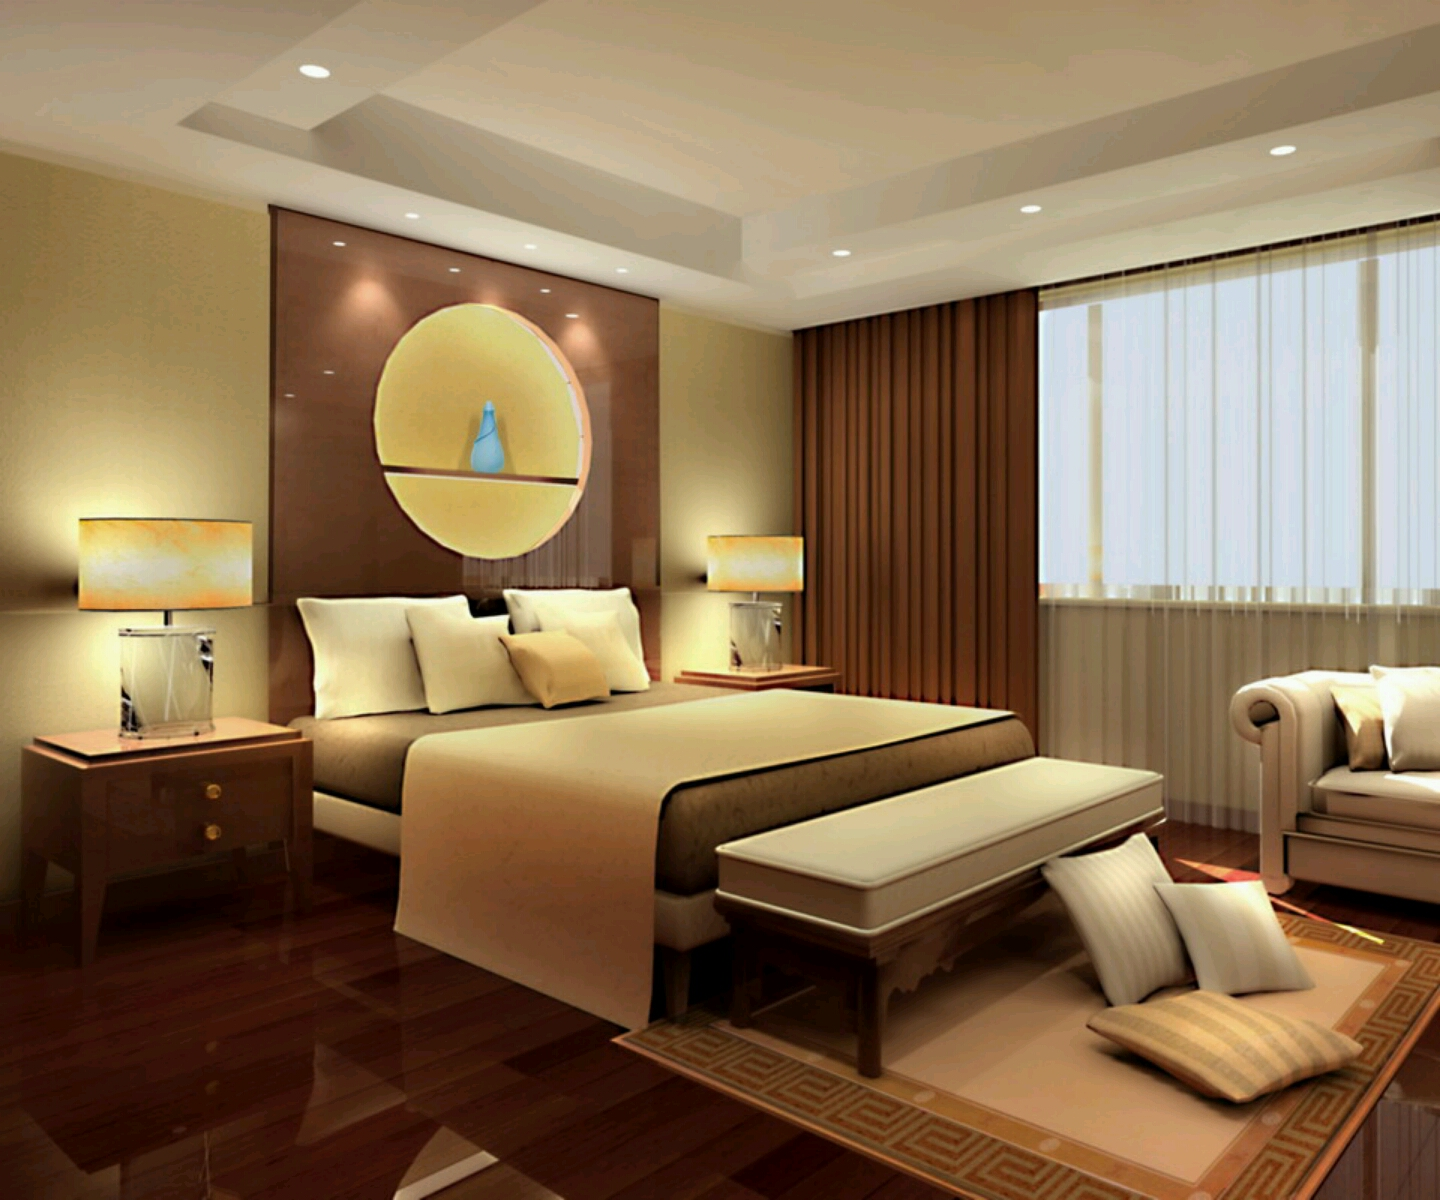 New home designs latest modern beautiful bedrooms for Beautiful room design